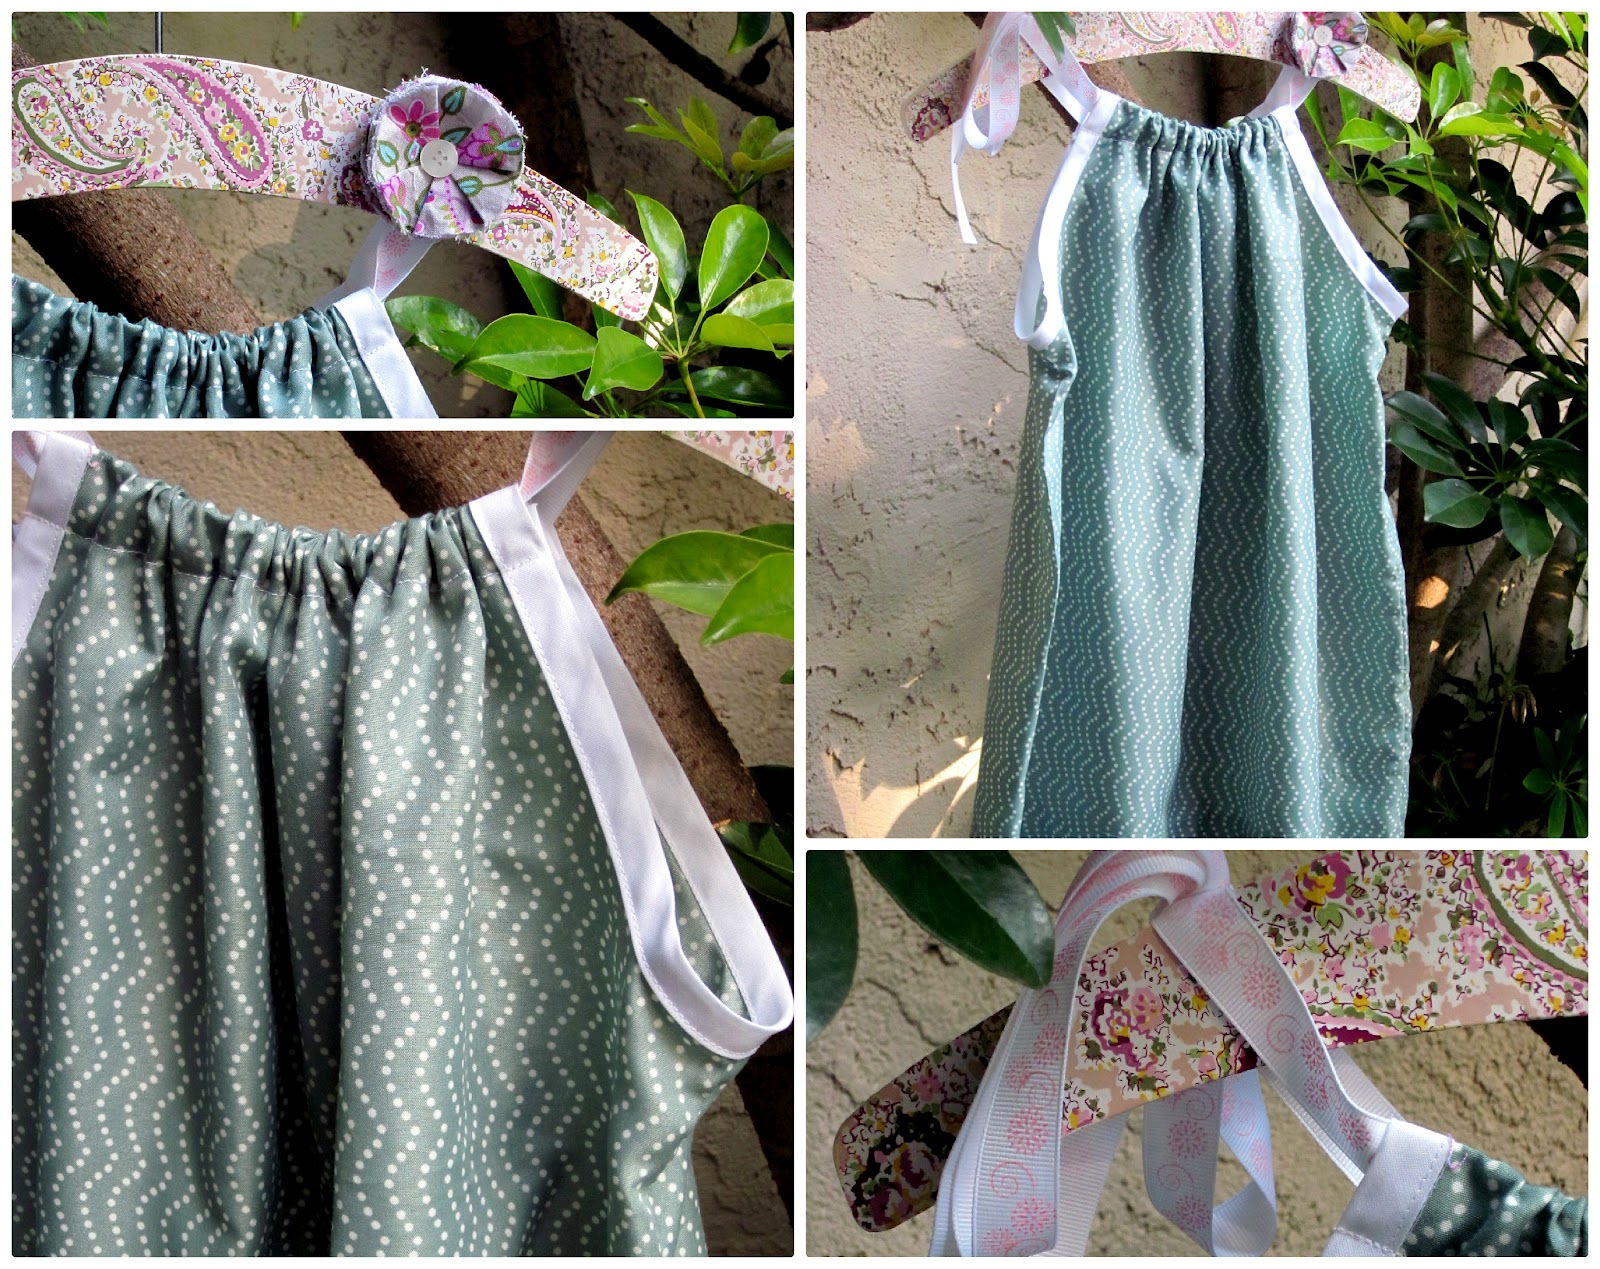 Easy Diy Pillowcase Dress: Mejia Mamma  EASY Pillowcase Dress,